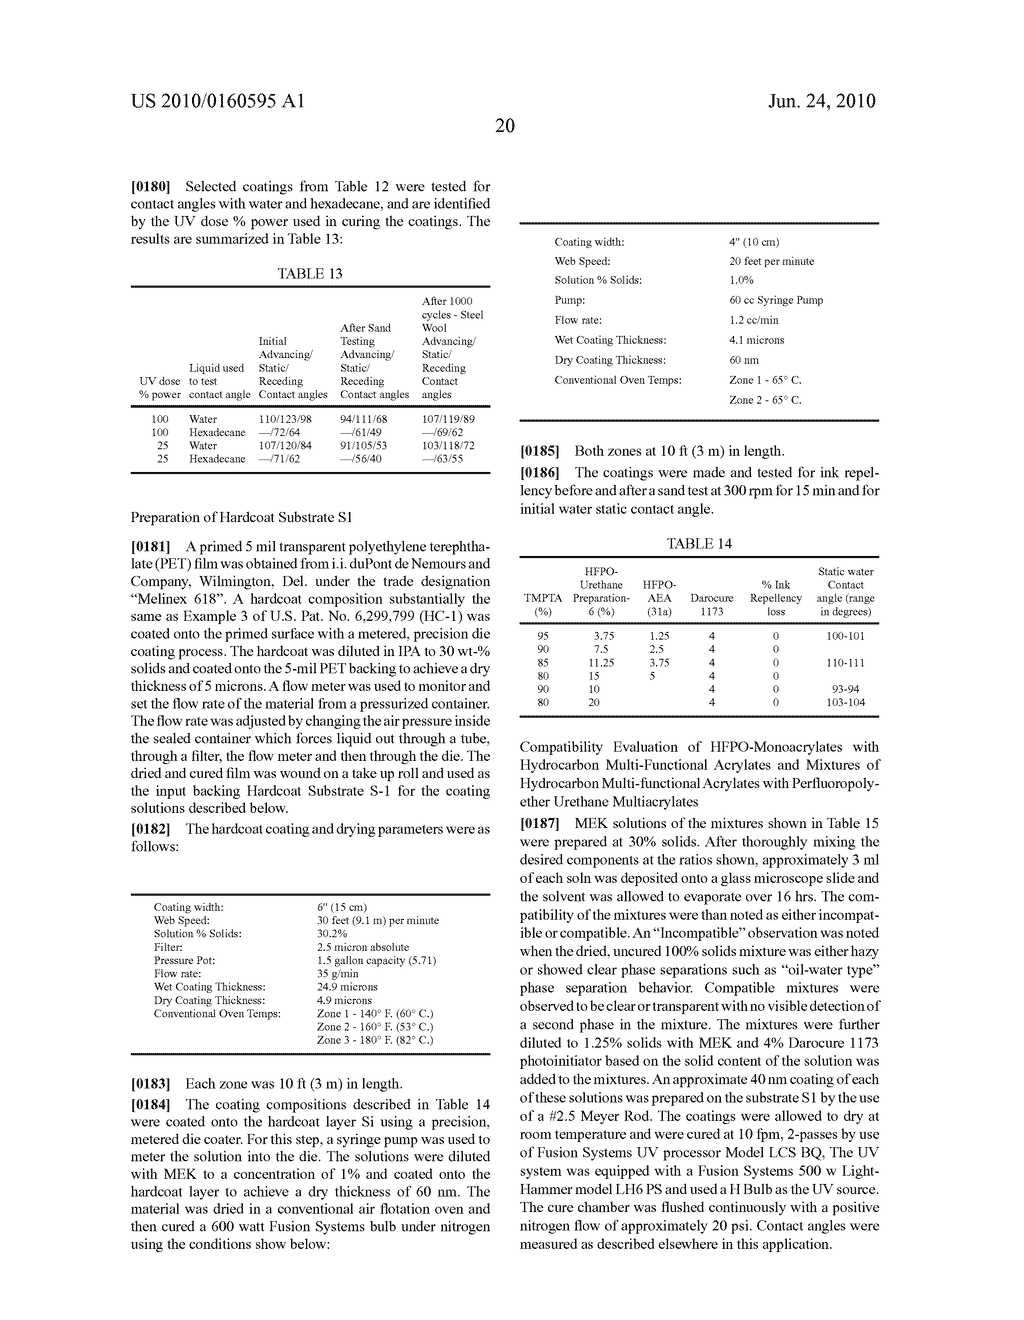 PERFLUOROPOLYETHER URETHANE ADDITIVES HAVING (METH)ACRYL GROUPS AND HARD COATS - diagram, schematic, and image 22